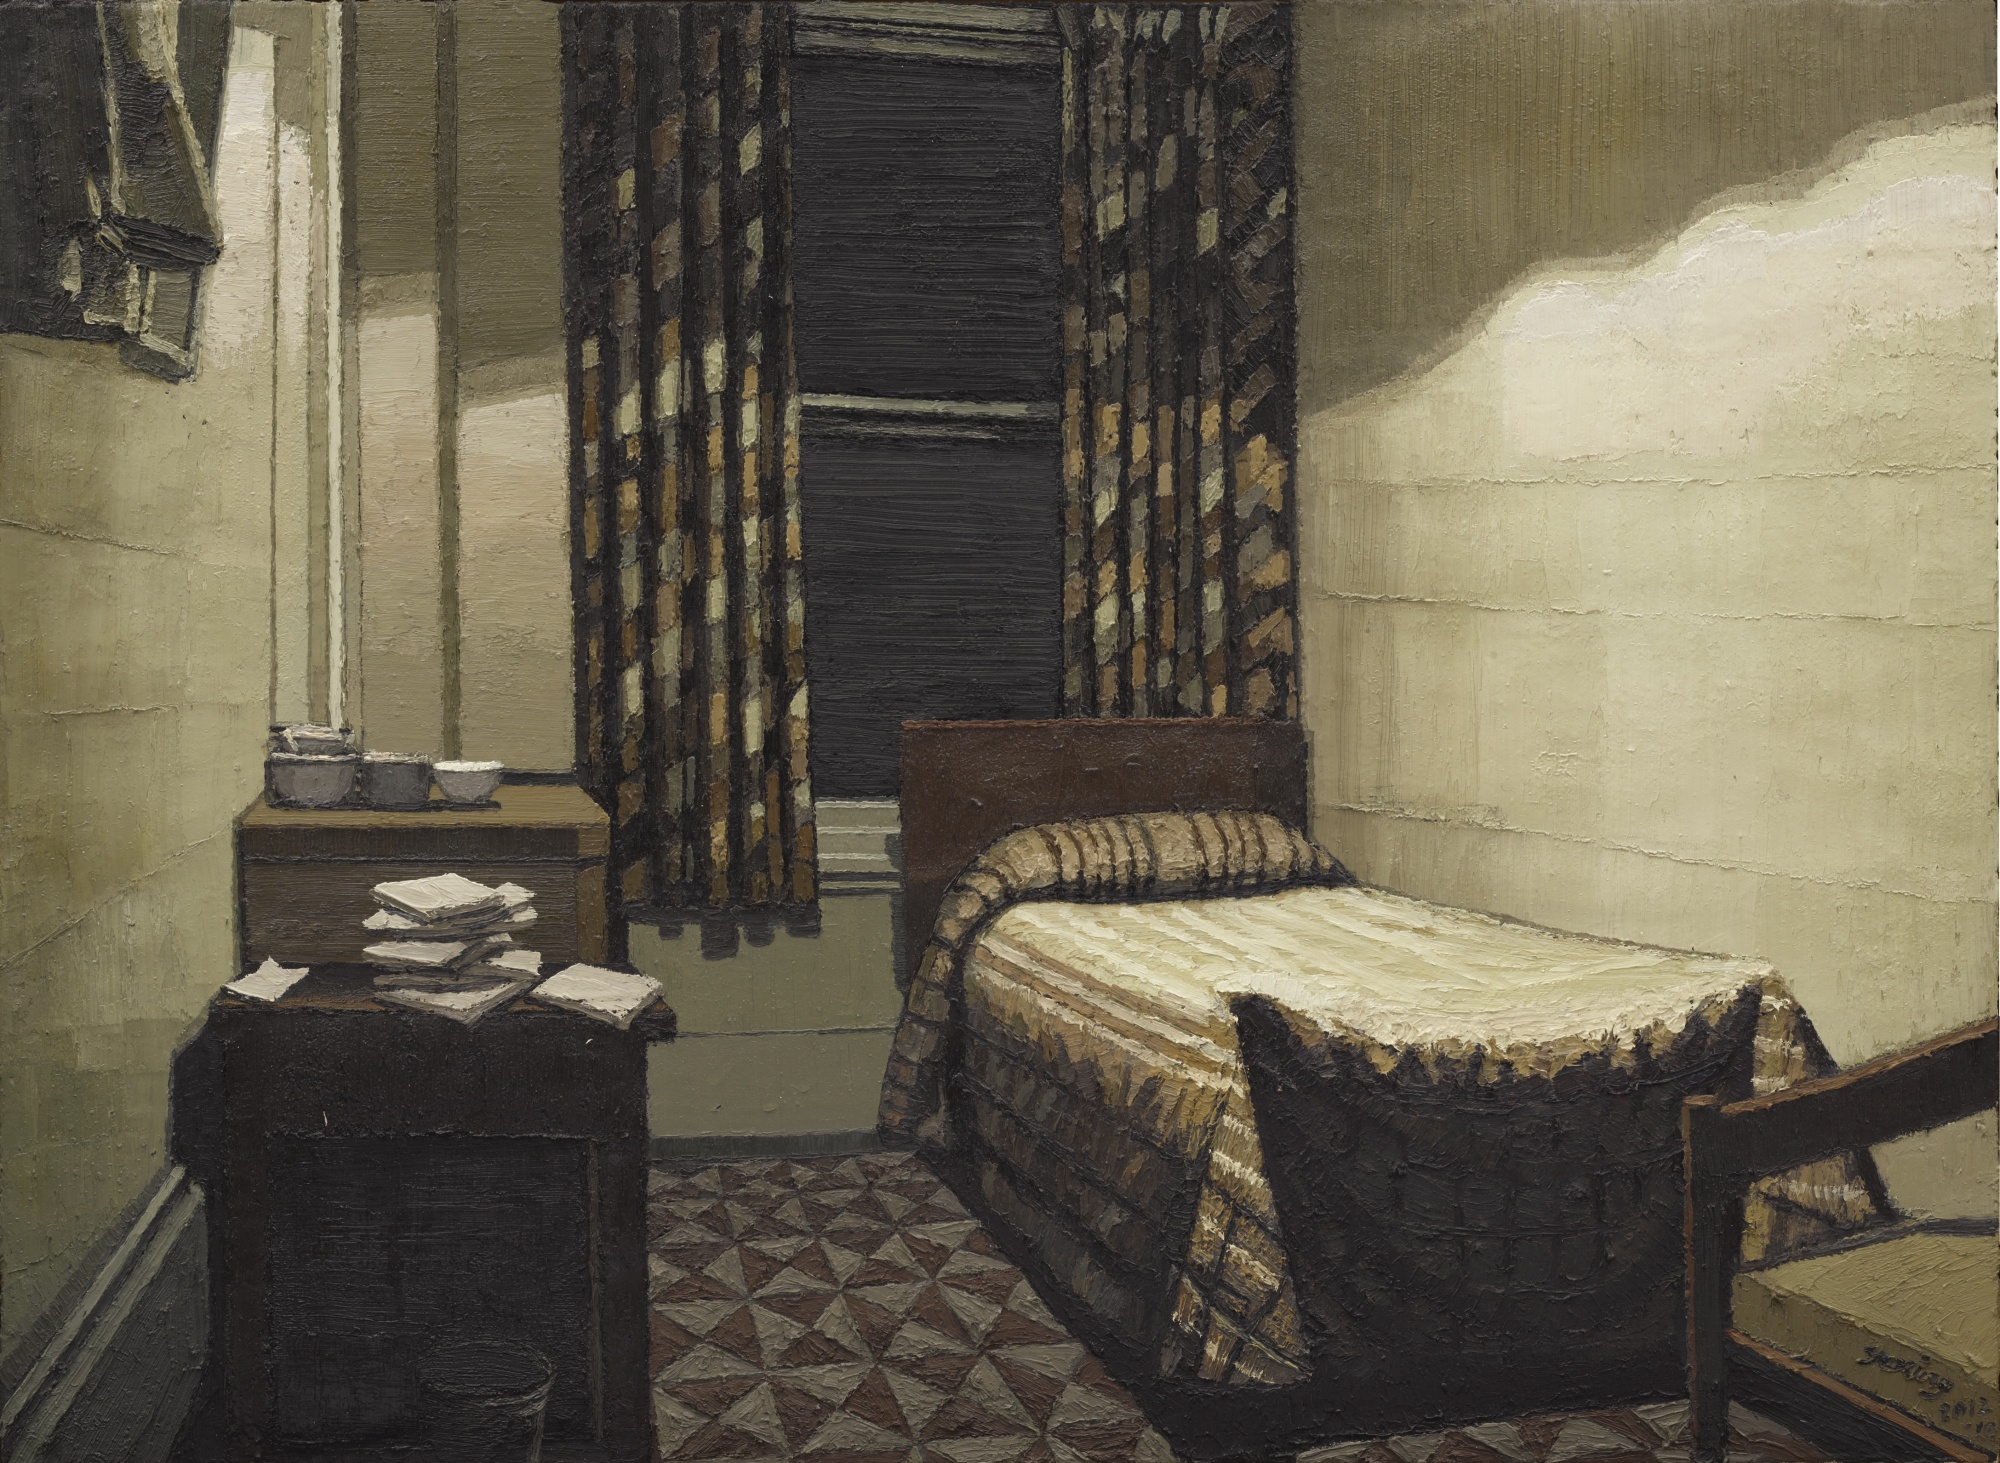 Zhang Yexing-Untitled - Bedroom-2012